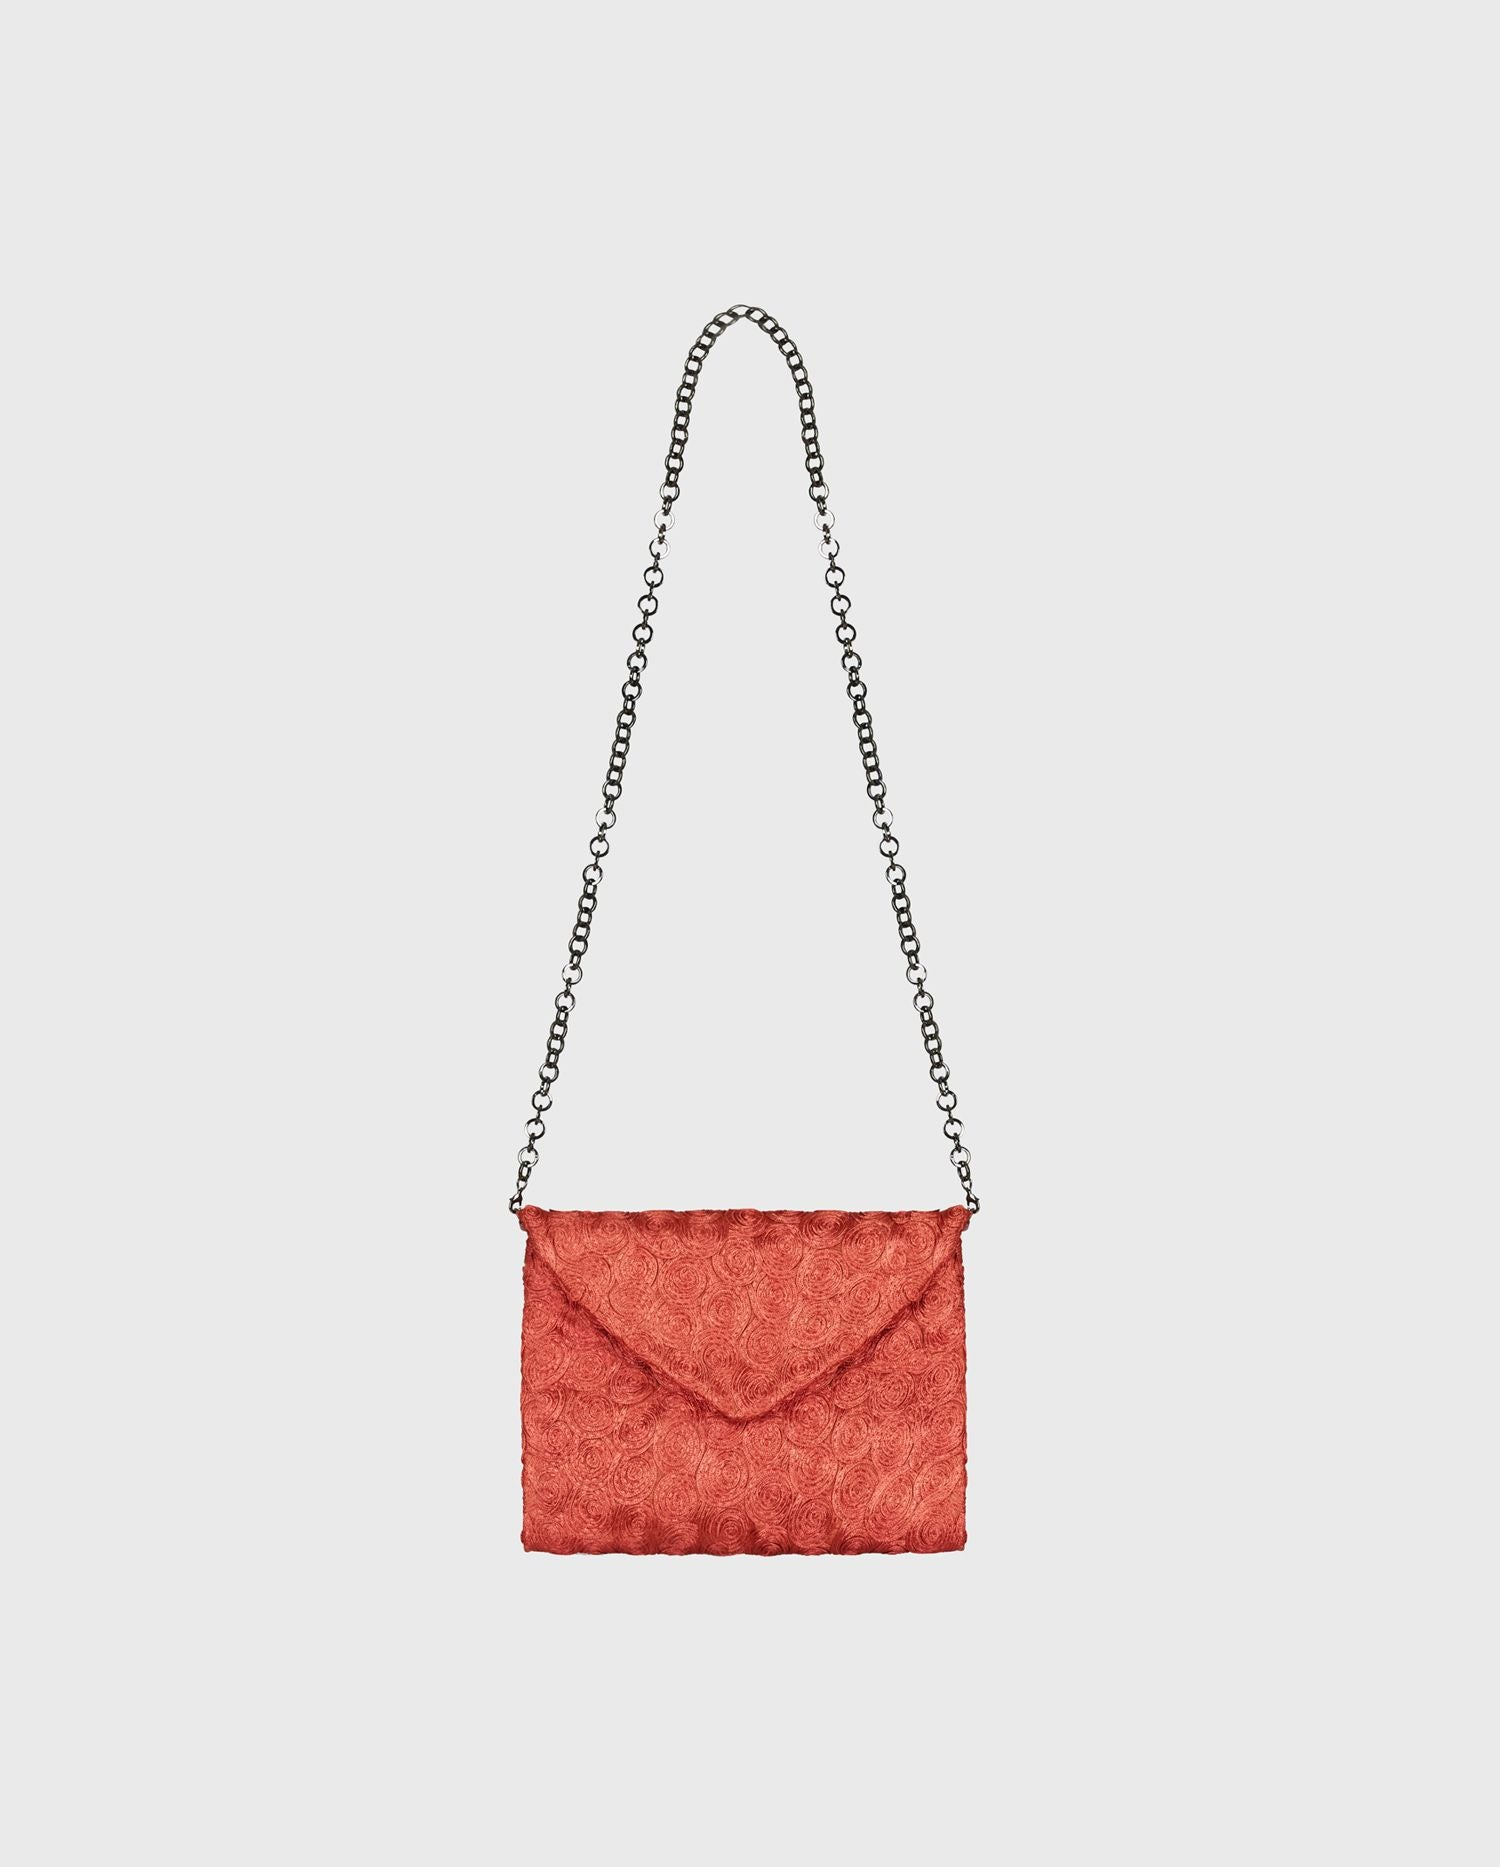 The red floral envelope NINA-PLT handbag will a pop of color to your look with ease